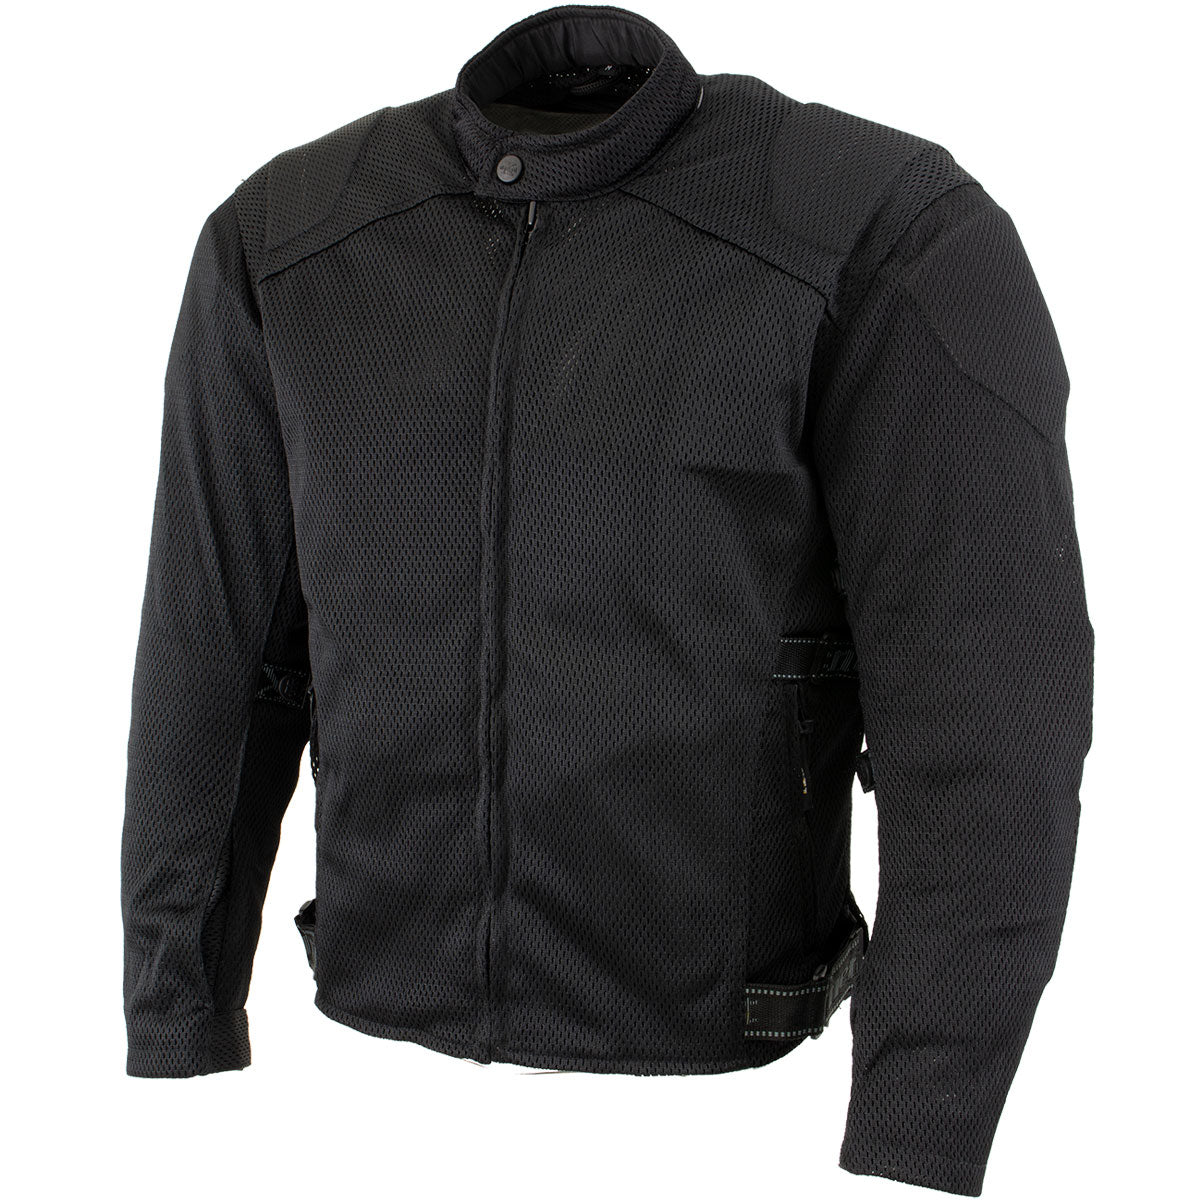 Black, Medium Xelement XS6550 Fumes Mens Black and High-Viz All Weather Mesh Level 3 CE Armored Motorcycle Jacket